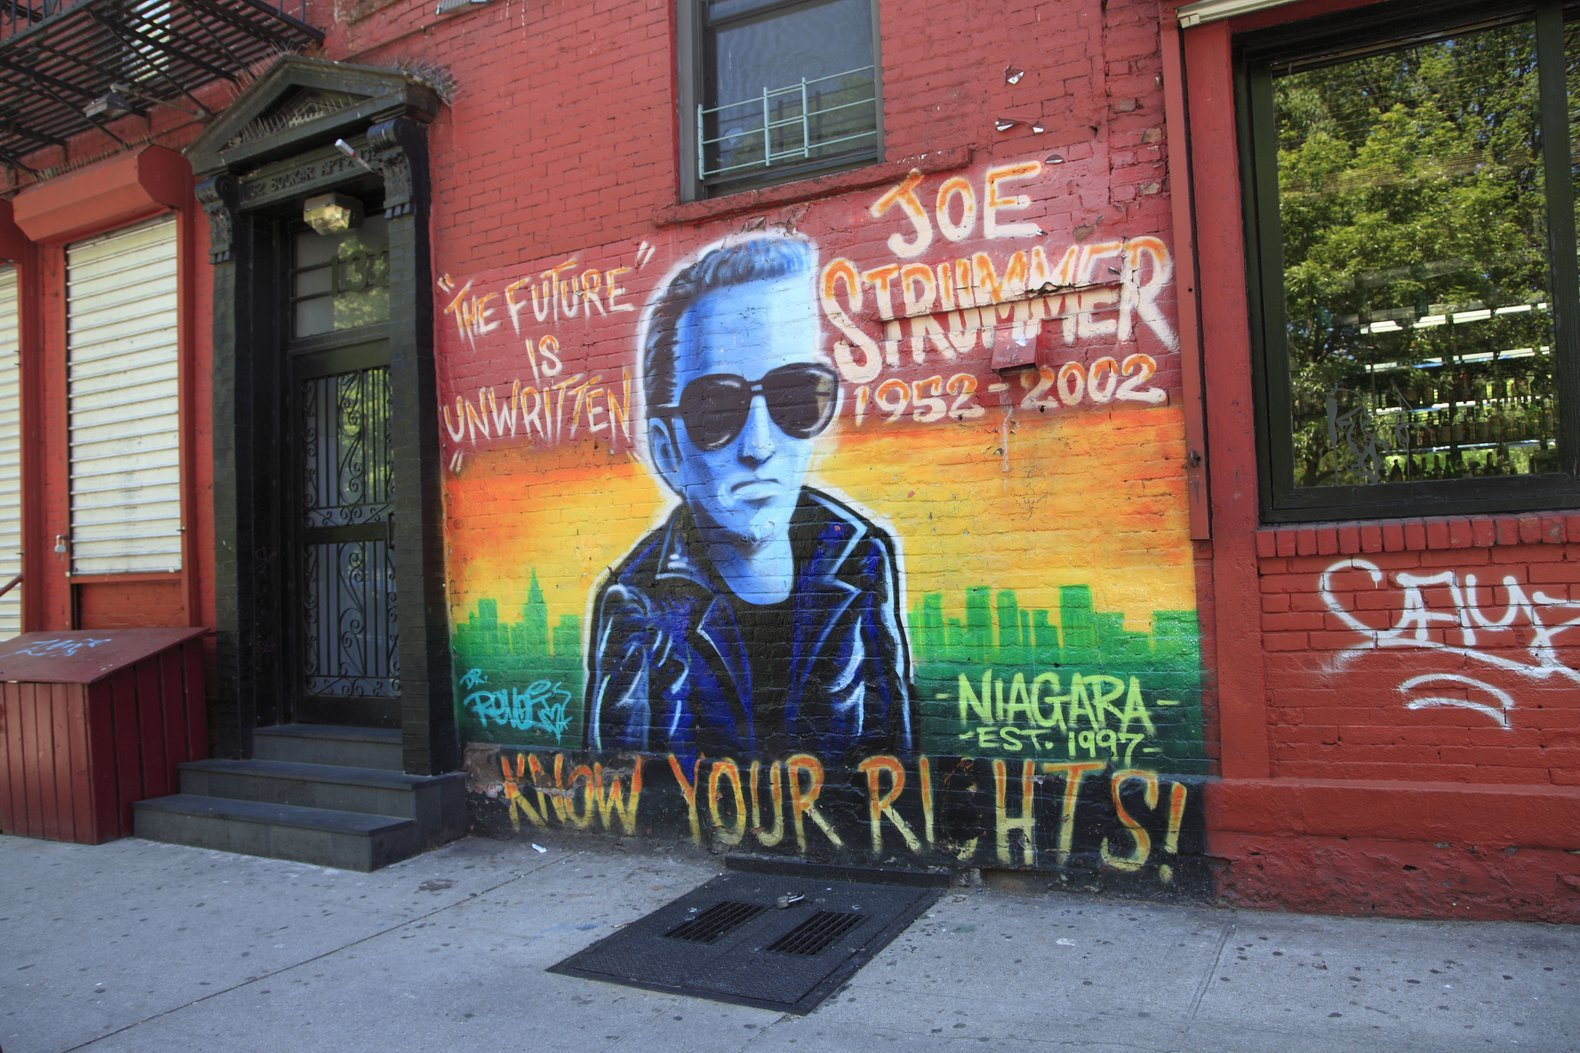 Memorial mural for Joe Strummer of The Clash on the wall of the Niagara Bar, East Village, Manhattan, New York City